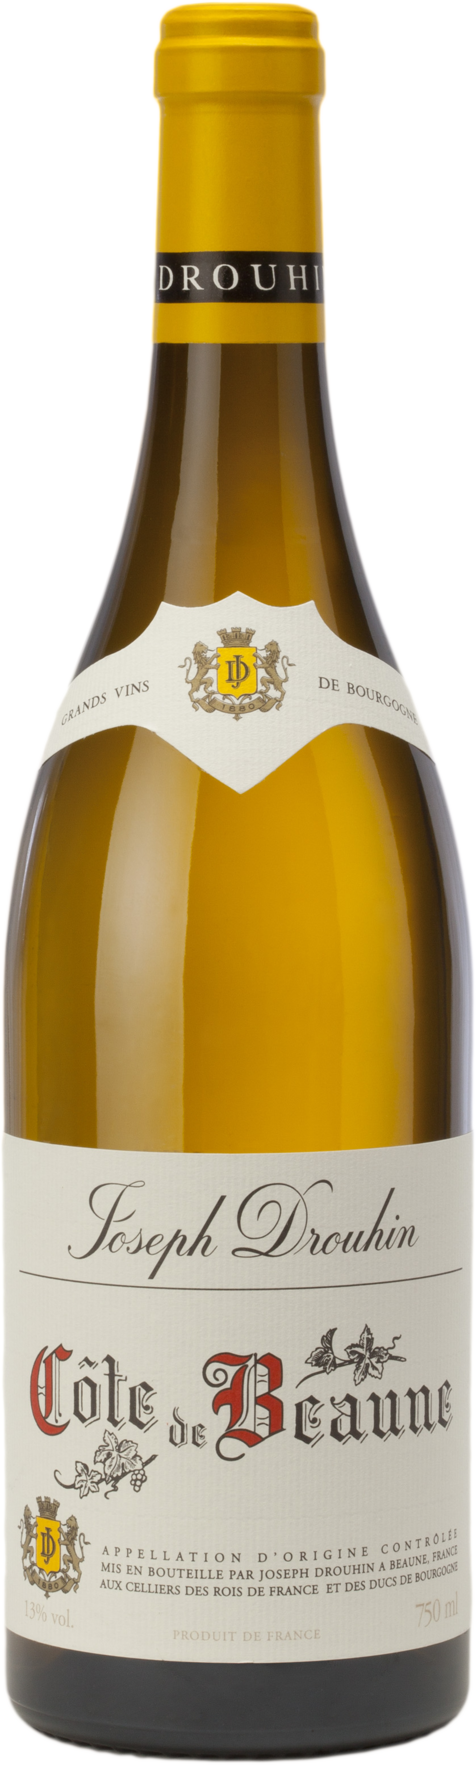 Vin blanc beaune for Cote de beaune tuile